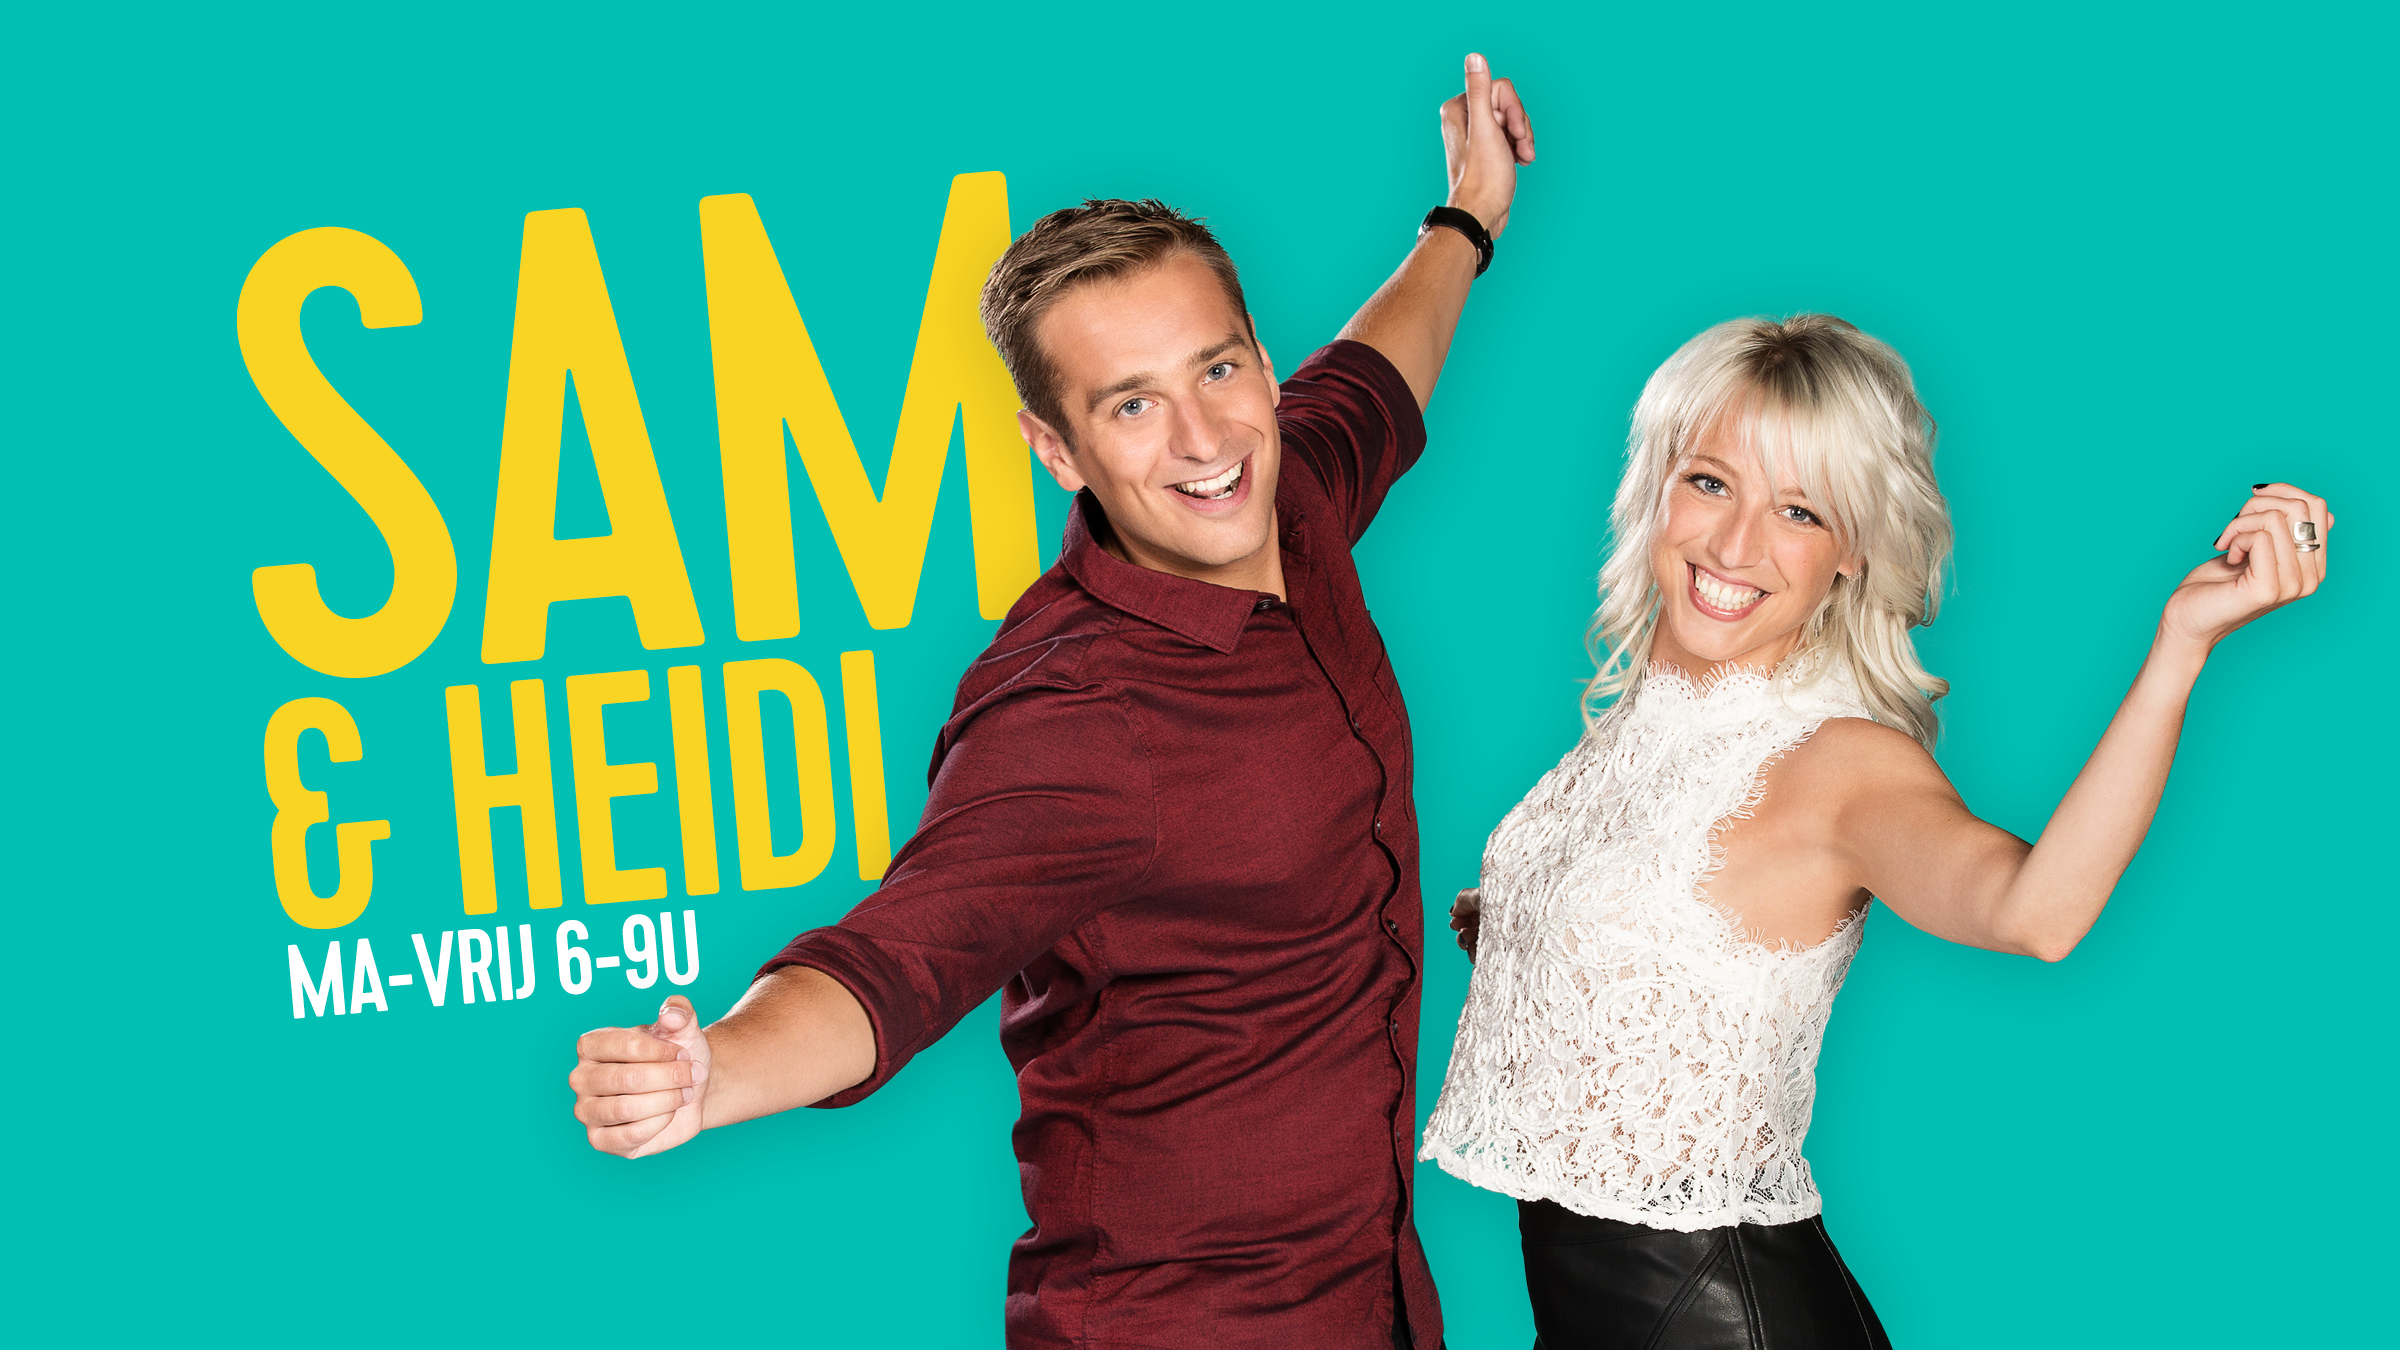 Programma headers sam en heidi 2400x1350